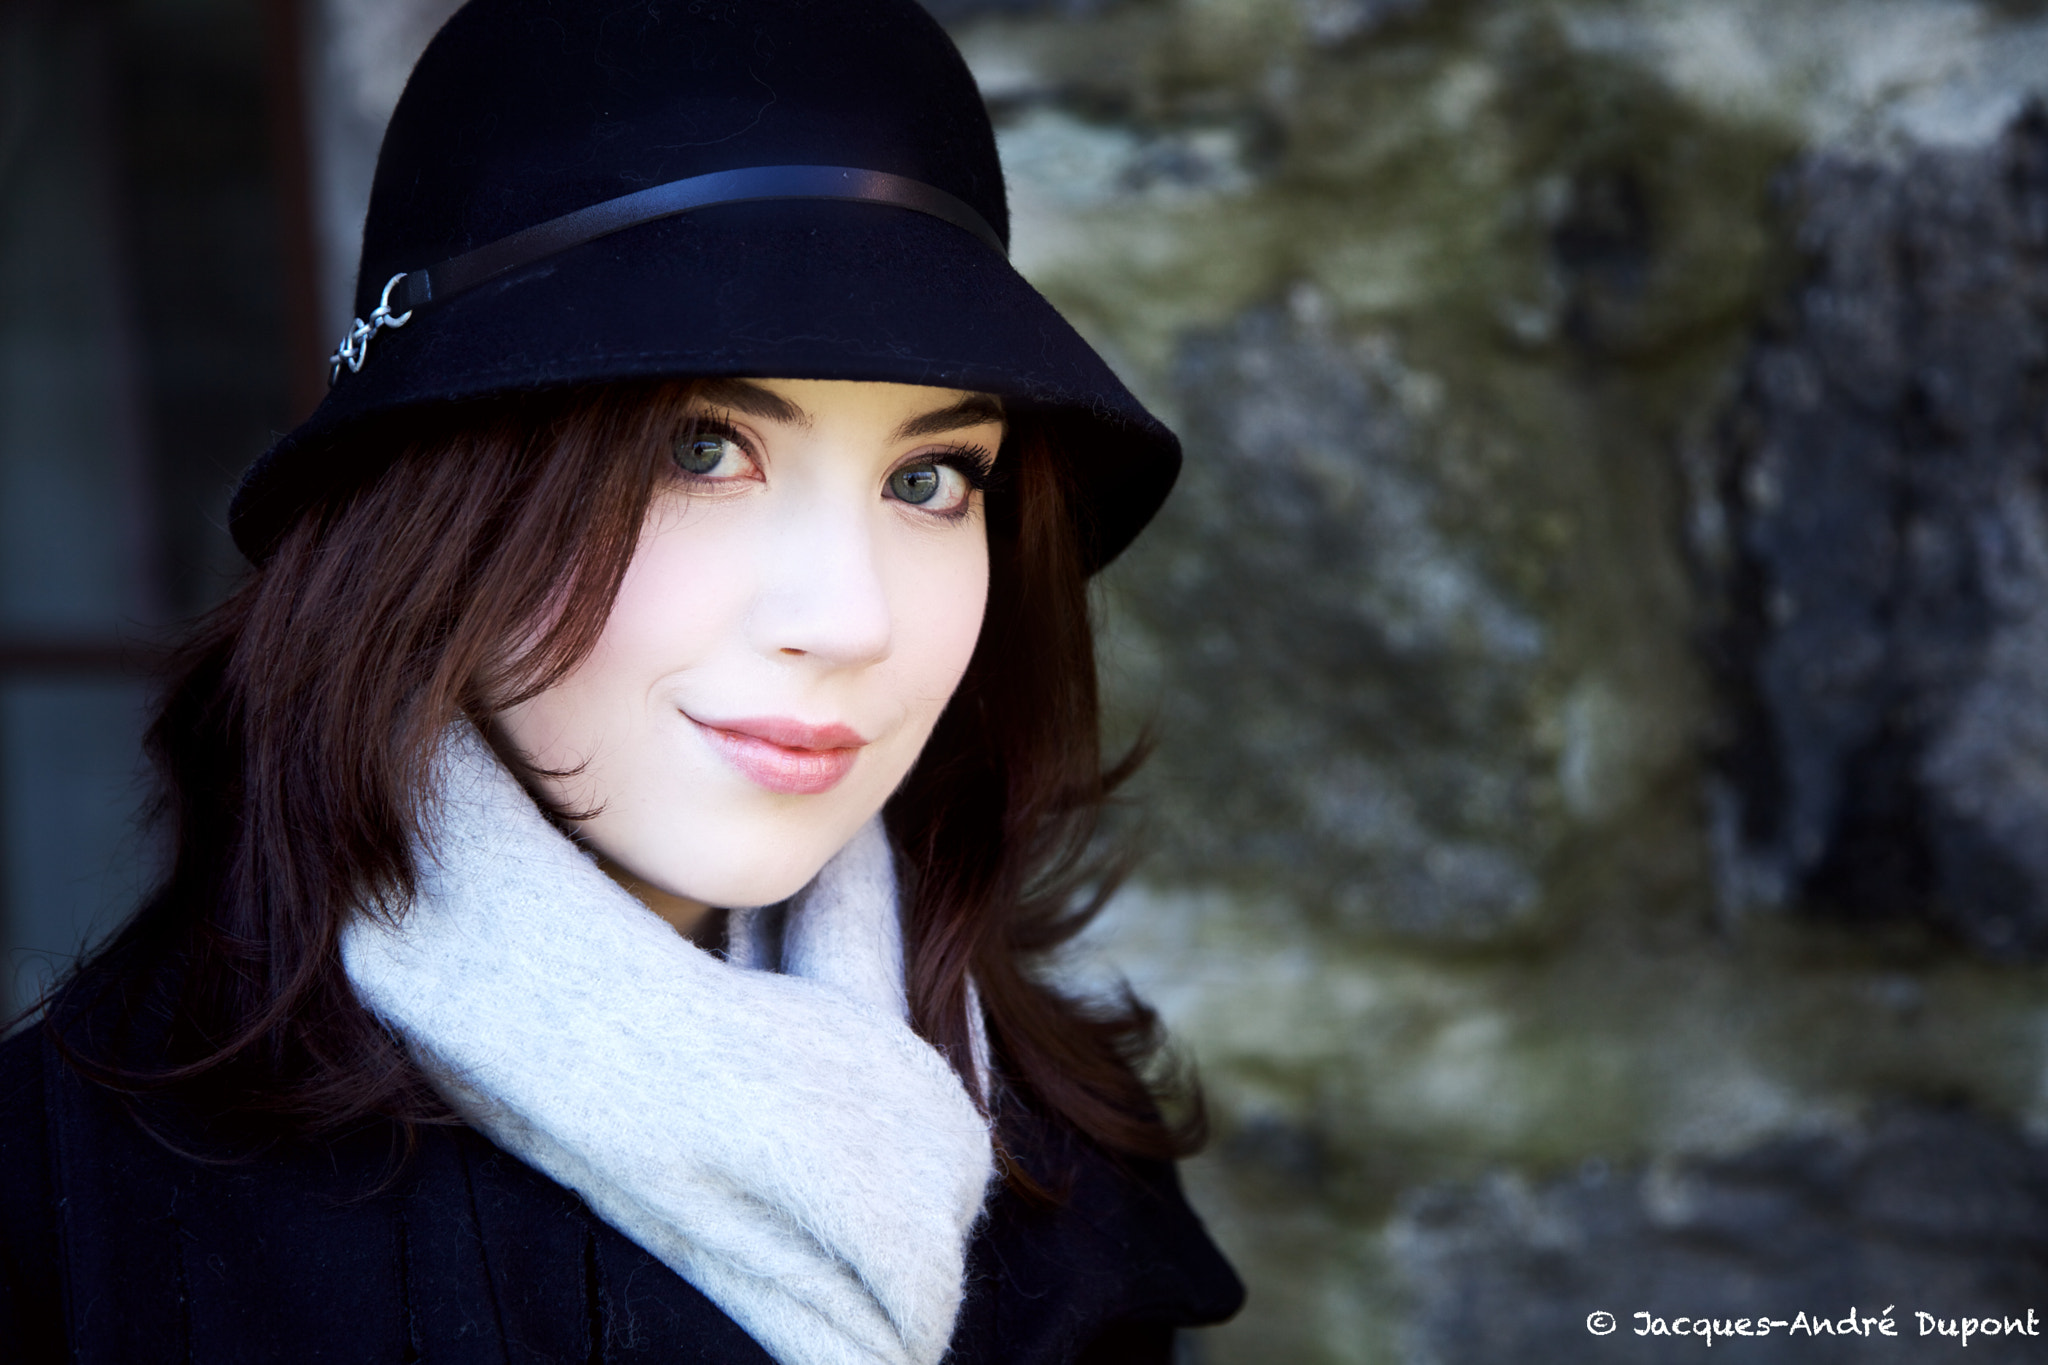 Photograph Vanessa - Winter Portrait - 3 by Jacques-Andre Dupont on 500px